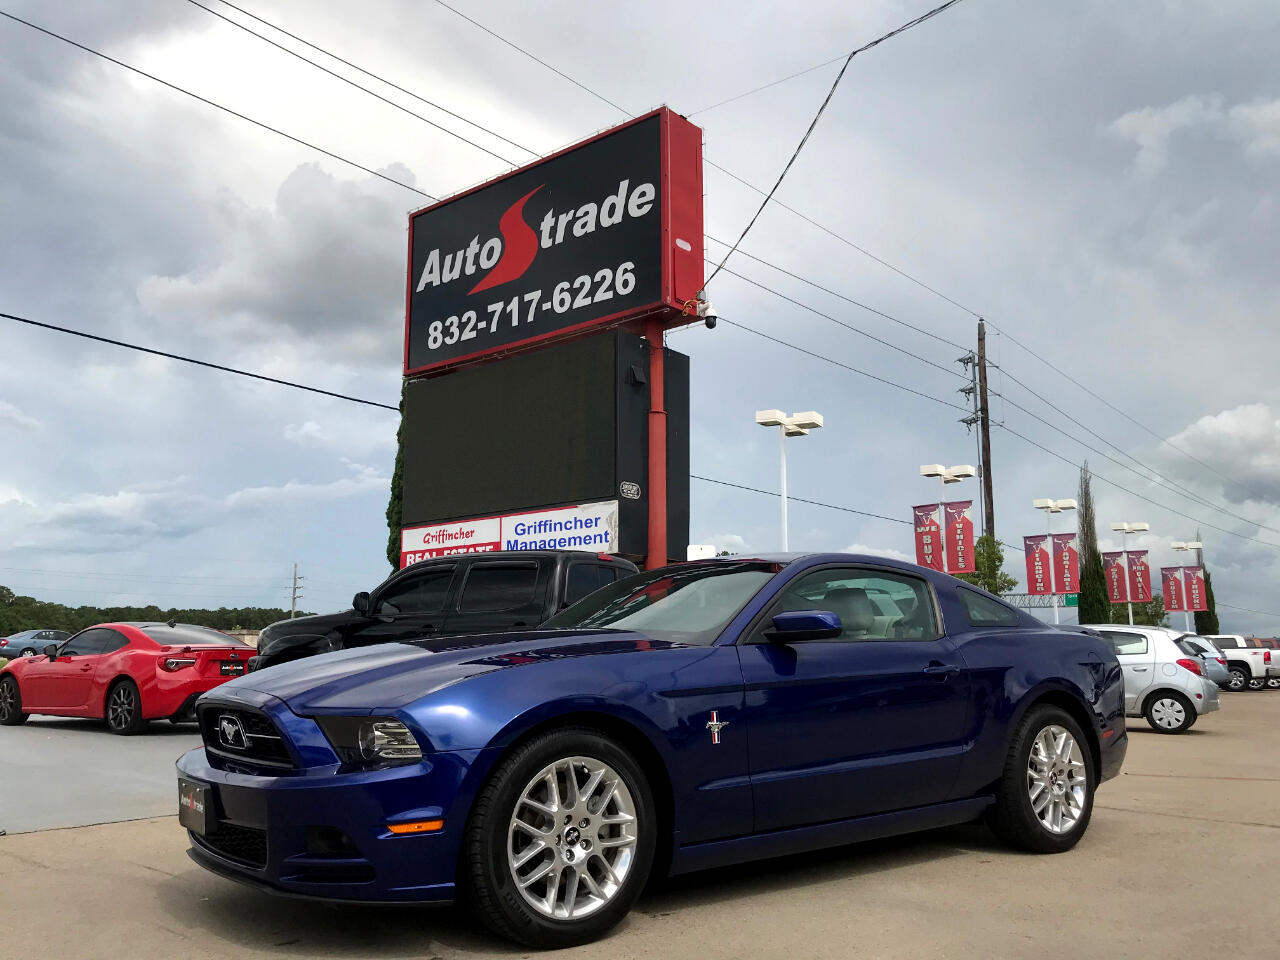 Ford Mustang 2dr Cpe V6 Premium 2014